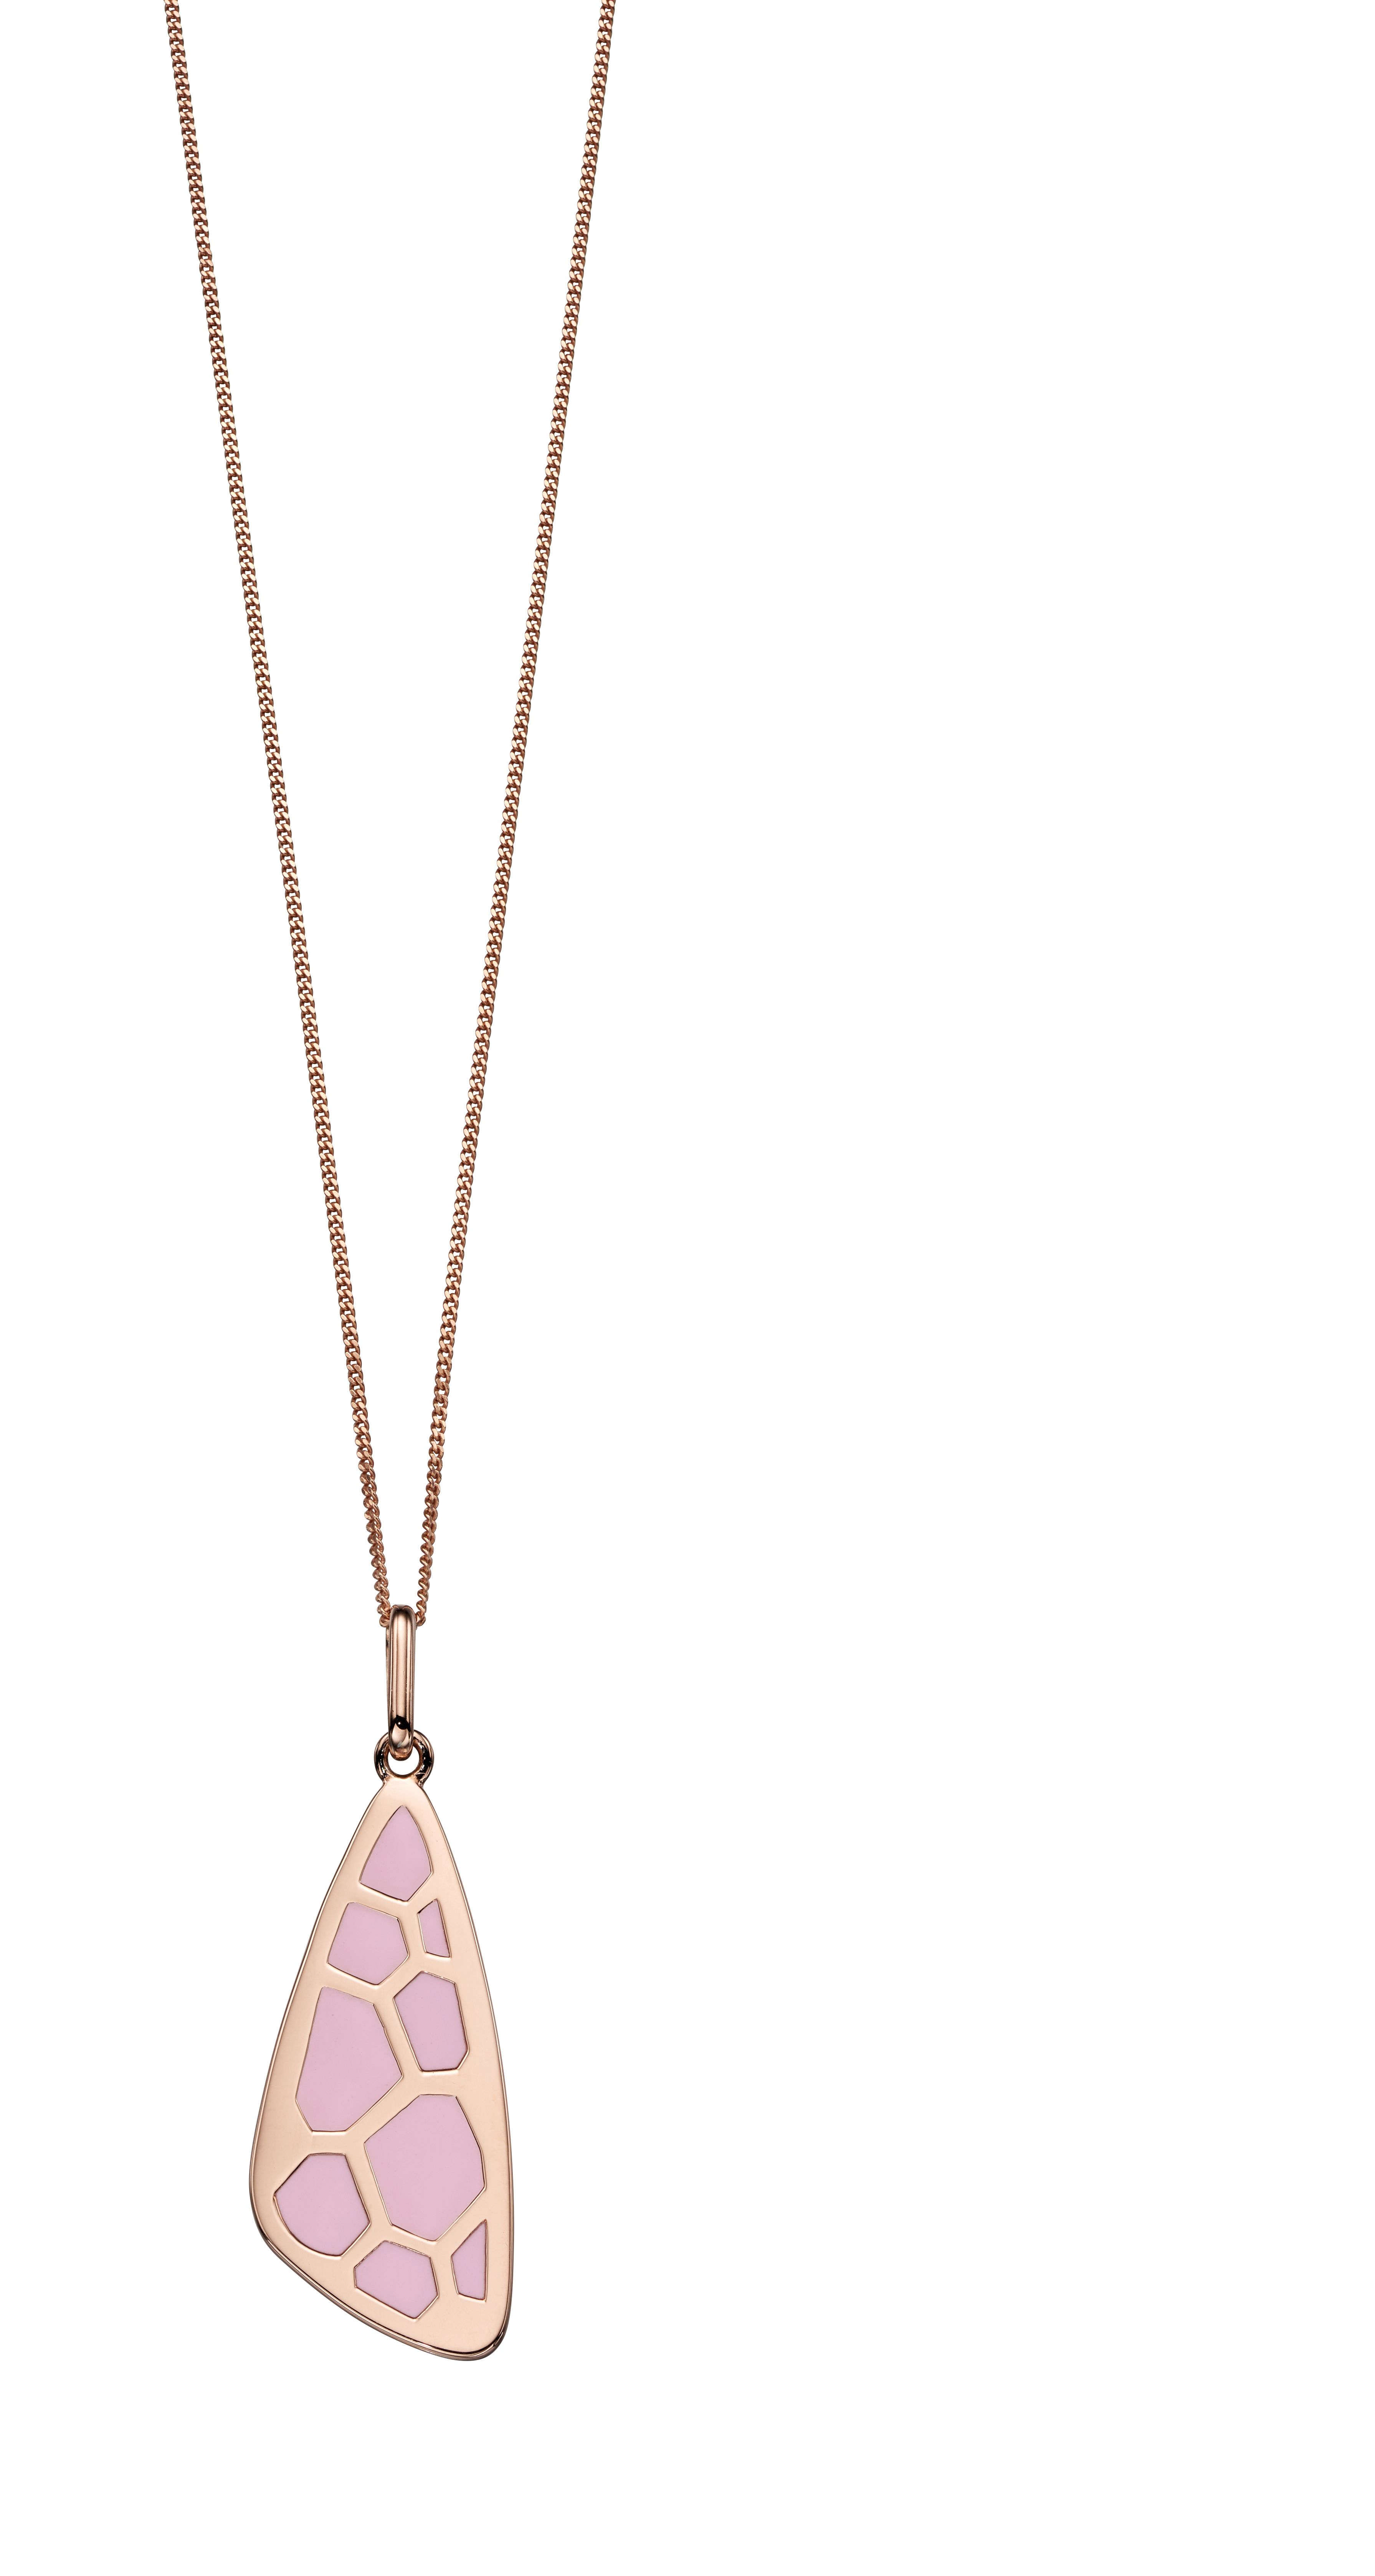 Elements Silver Womens 925 Sterling Silver Rose Gold Plated Pink Enamel Wing Shape Pendant Necklace of Length 46cm